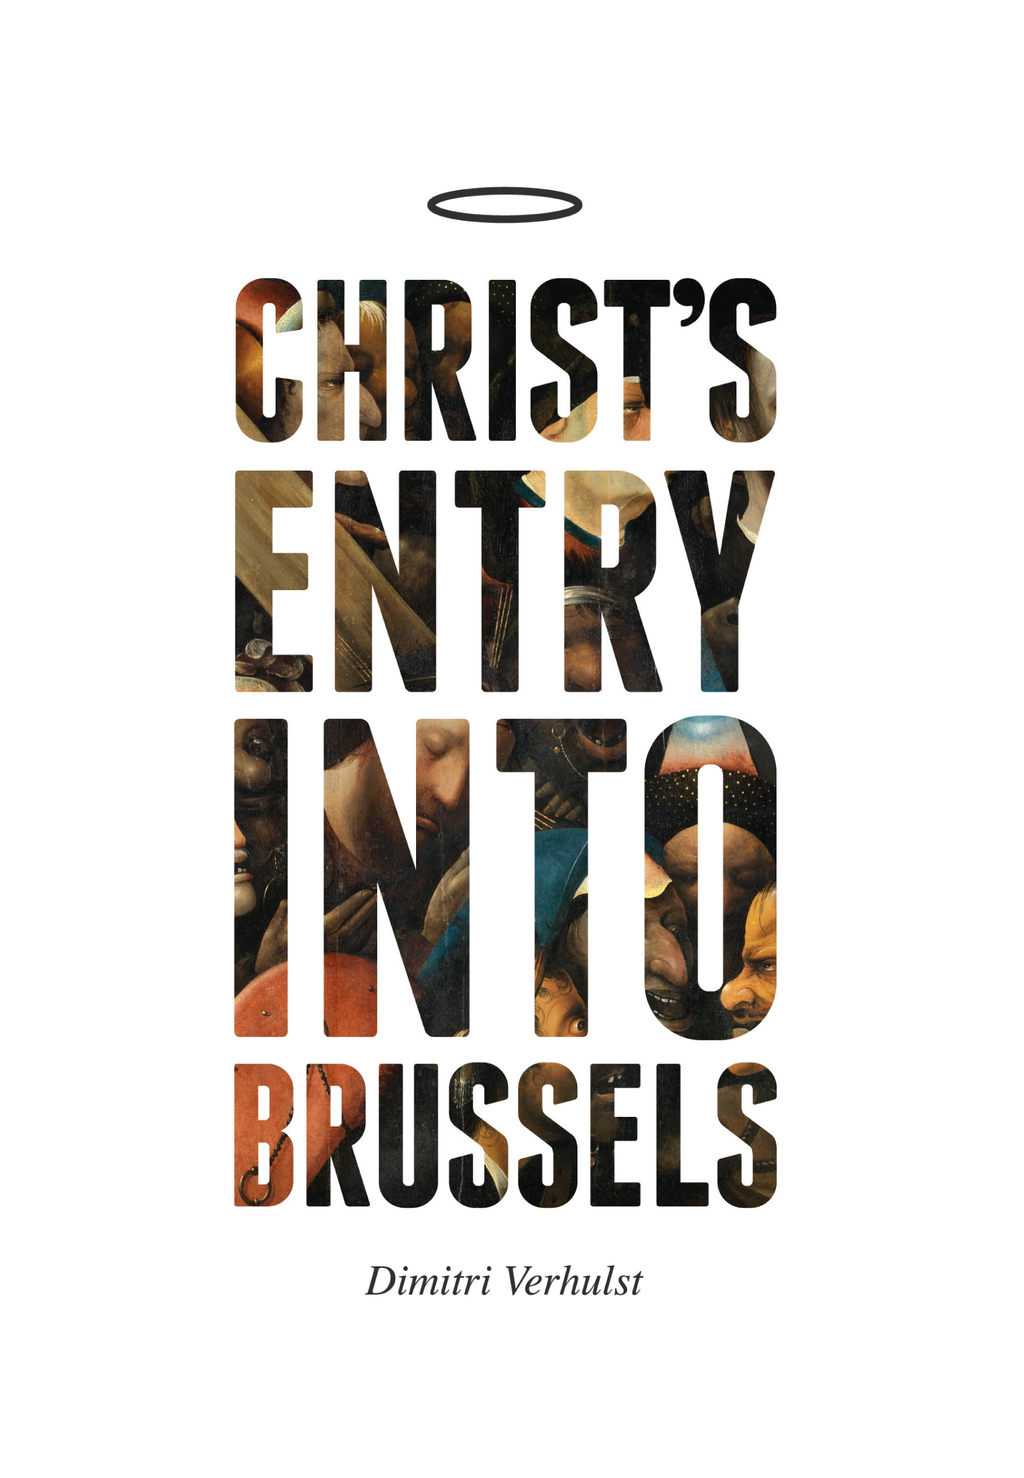 Christ?s Entry into Brussels